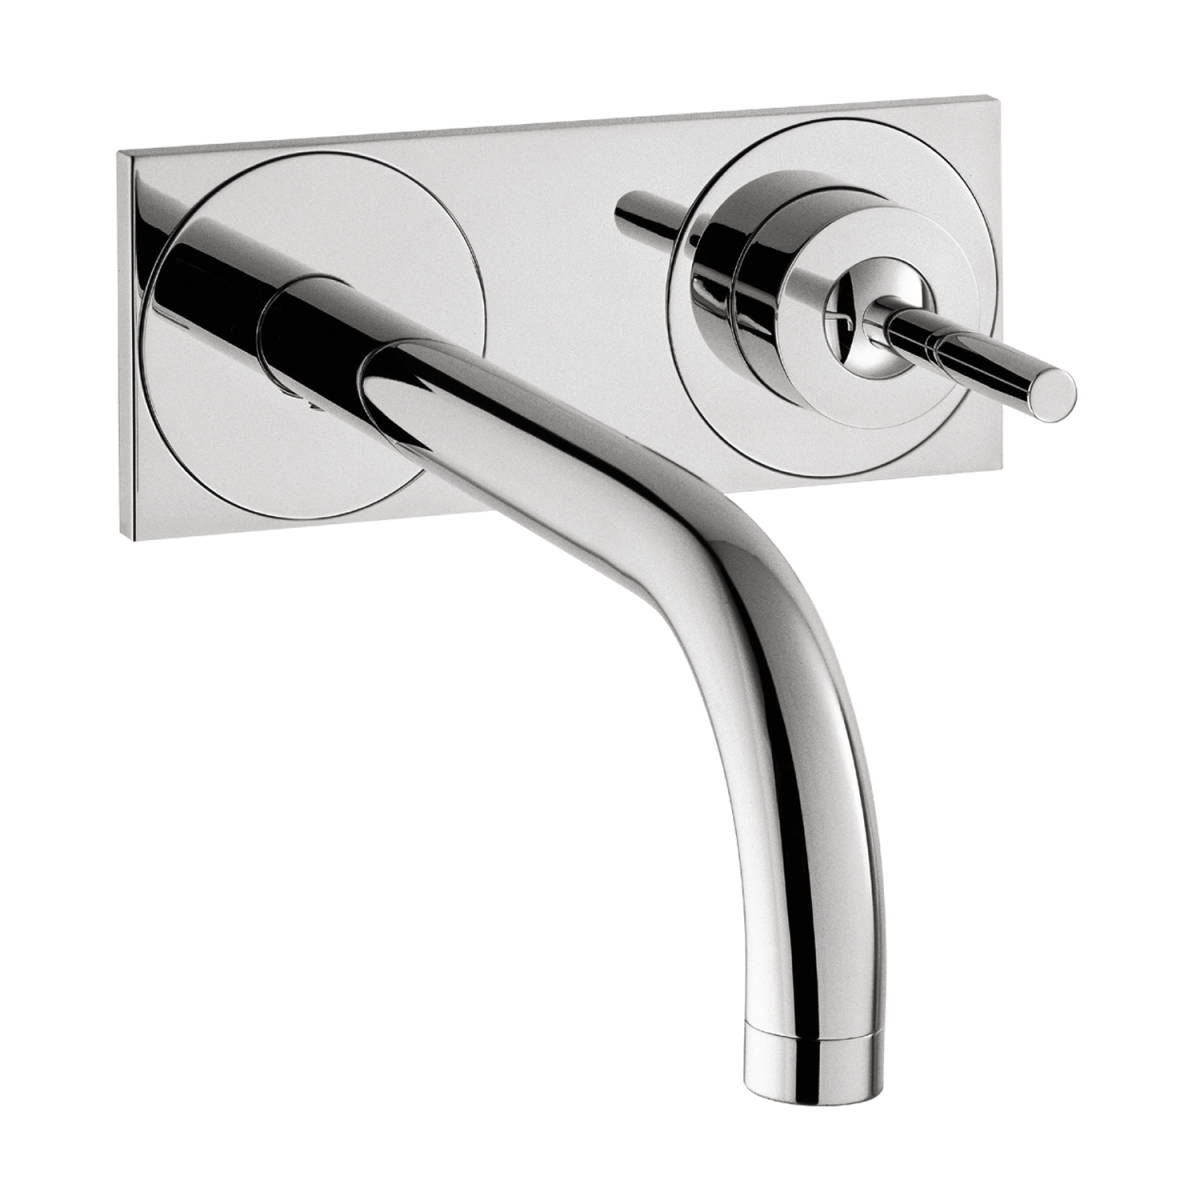 Axor Uno Washbasin Faucets Chrome 38117001